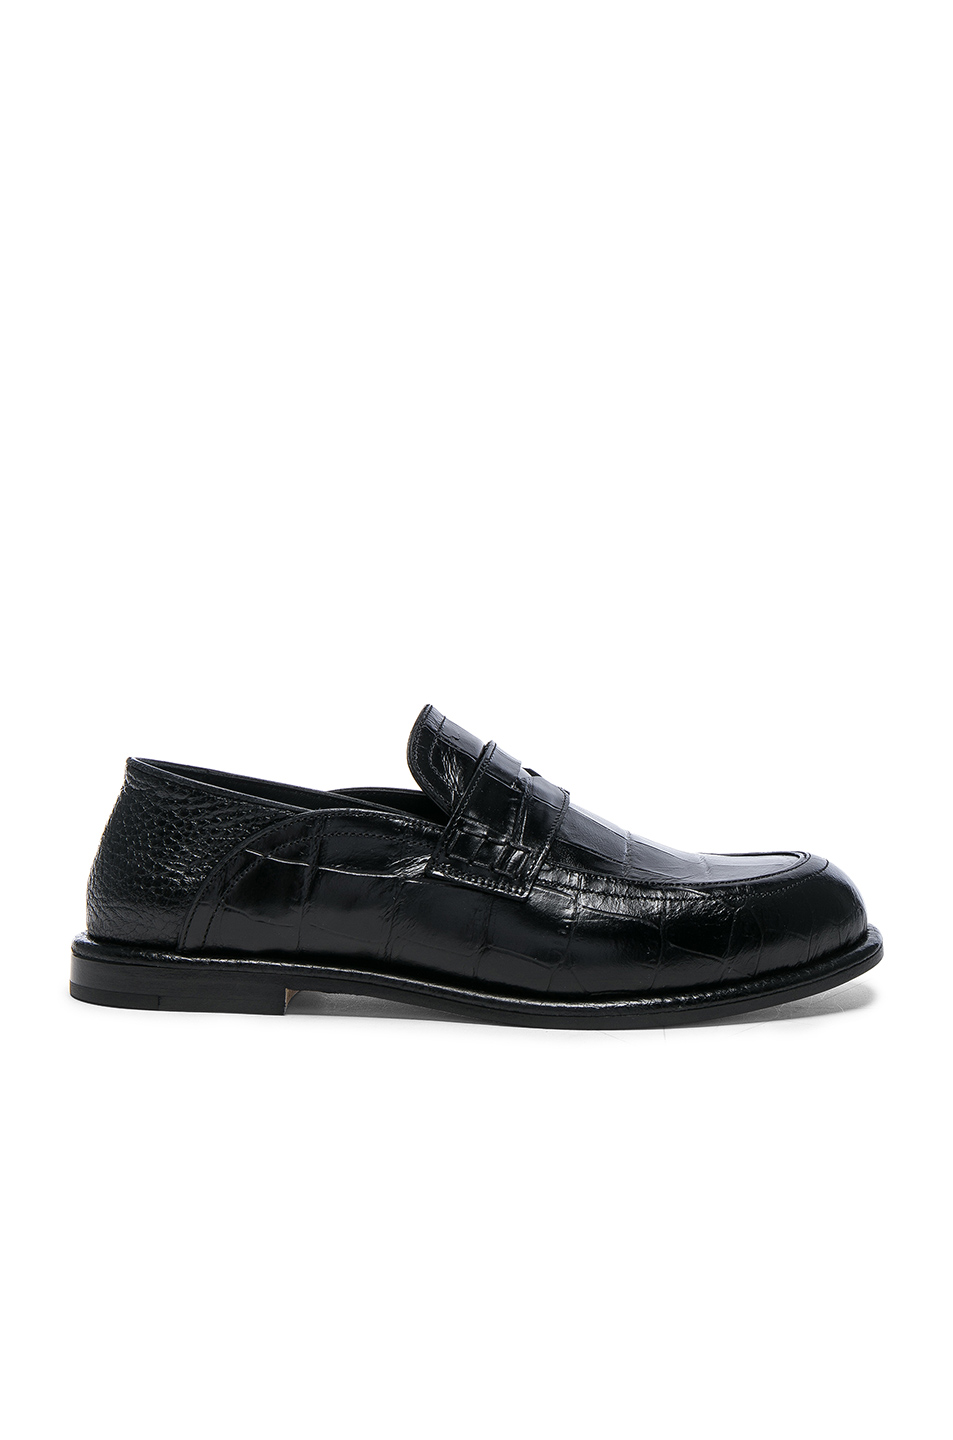 Collapsible-heel crocodile-effect leather loafers Loewe F5rXxW